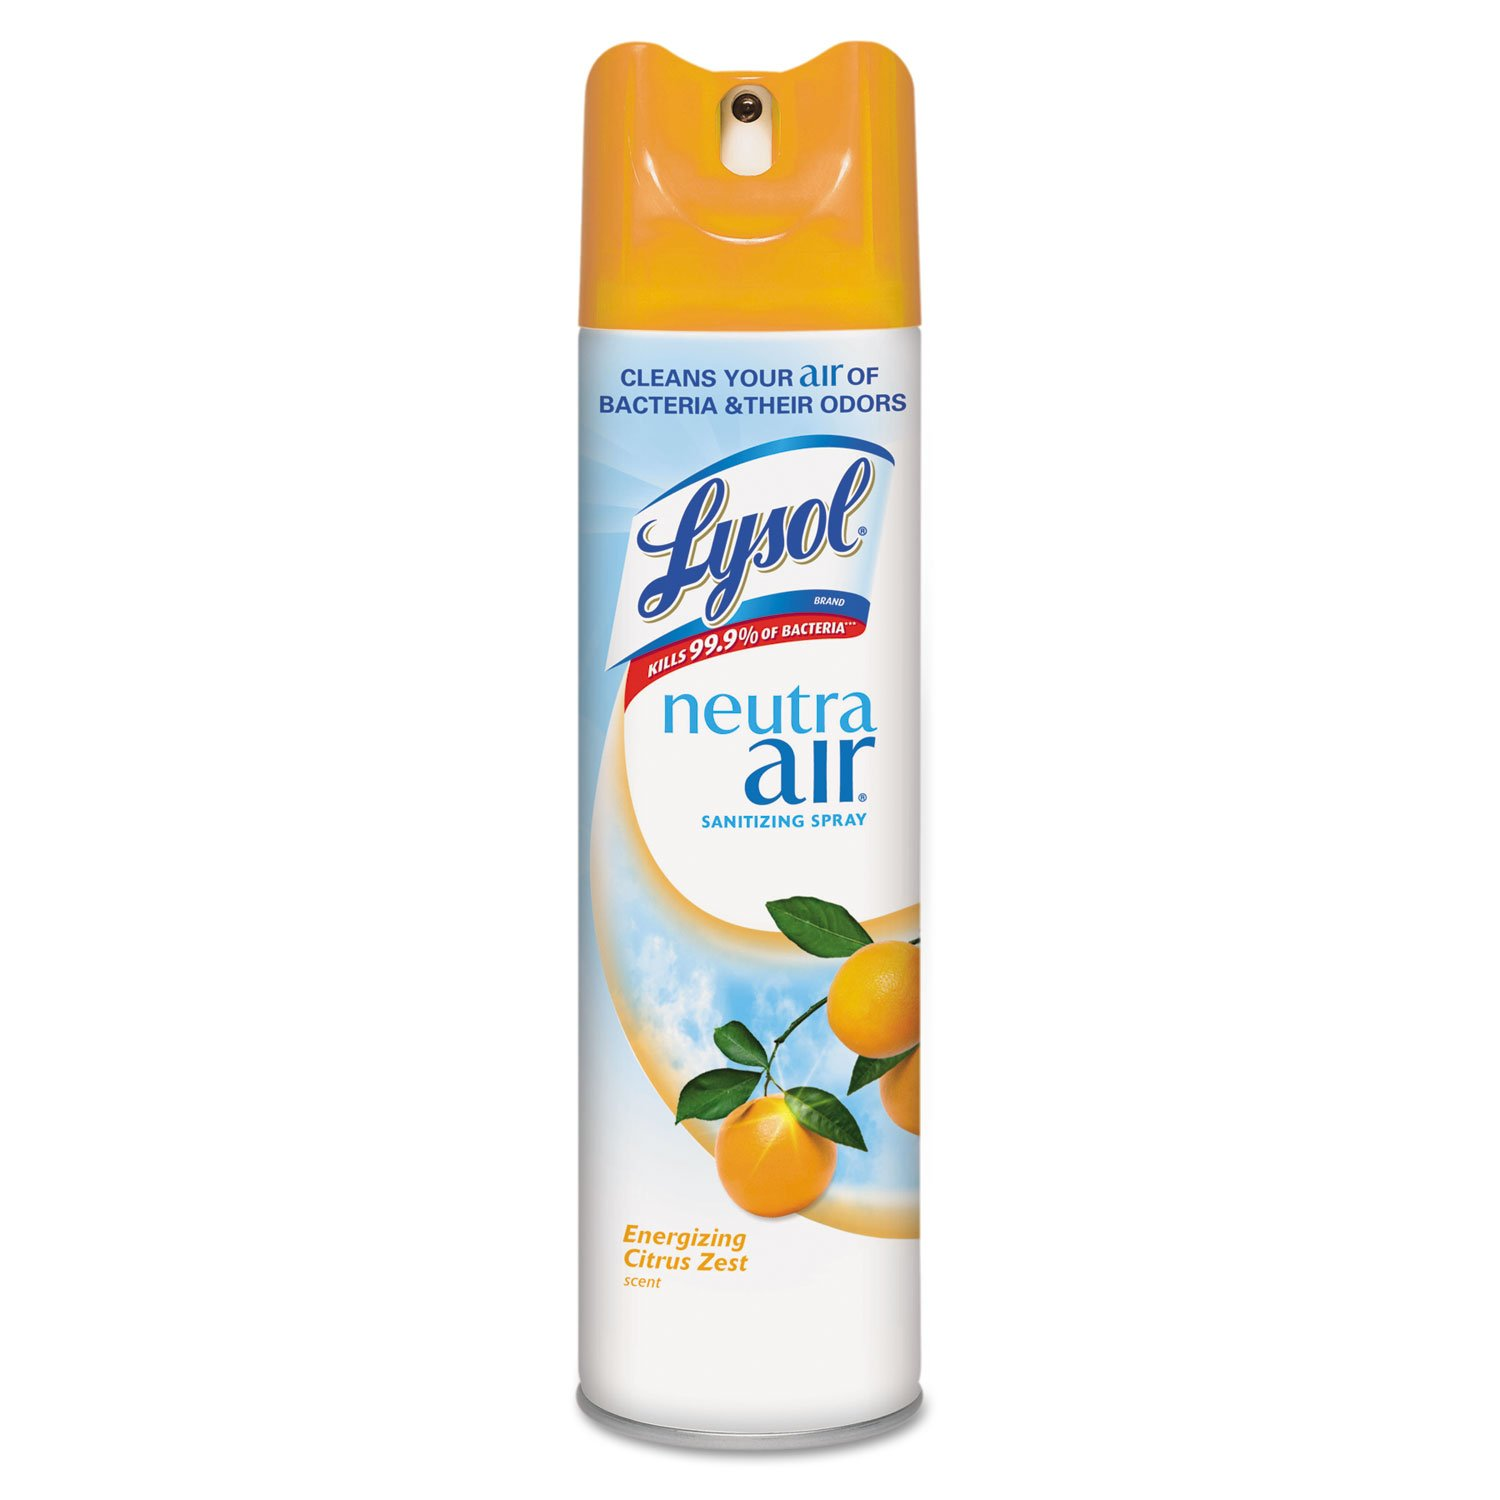 Lysol Neutra Air Sanitizing Spray Air Freshener, Aerosol, Energizing Citrus Zest, 10 Ounce  (Pack of 12)